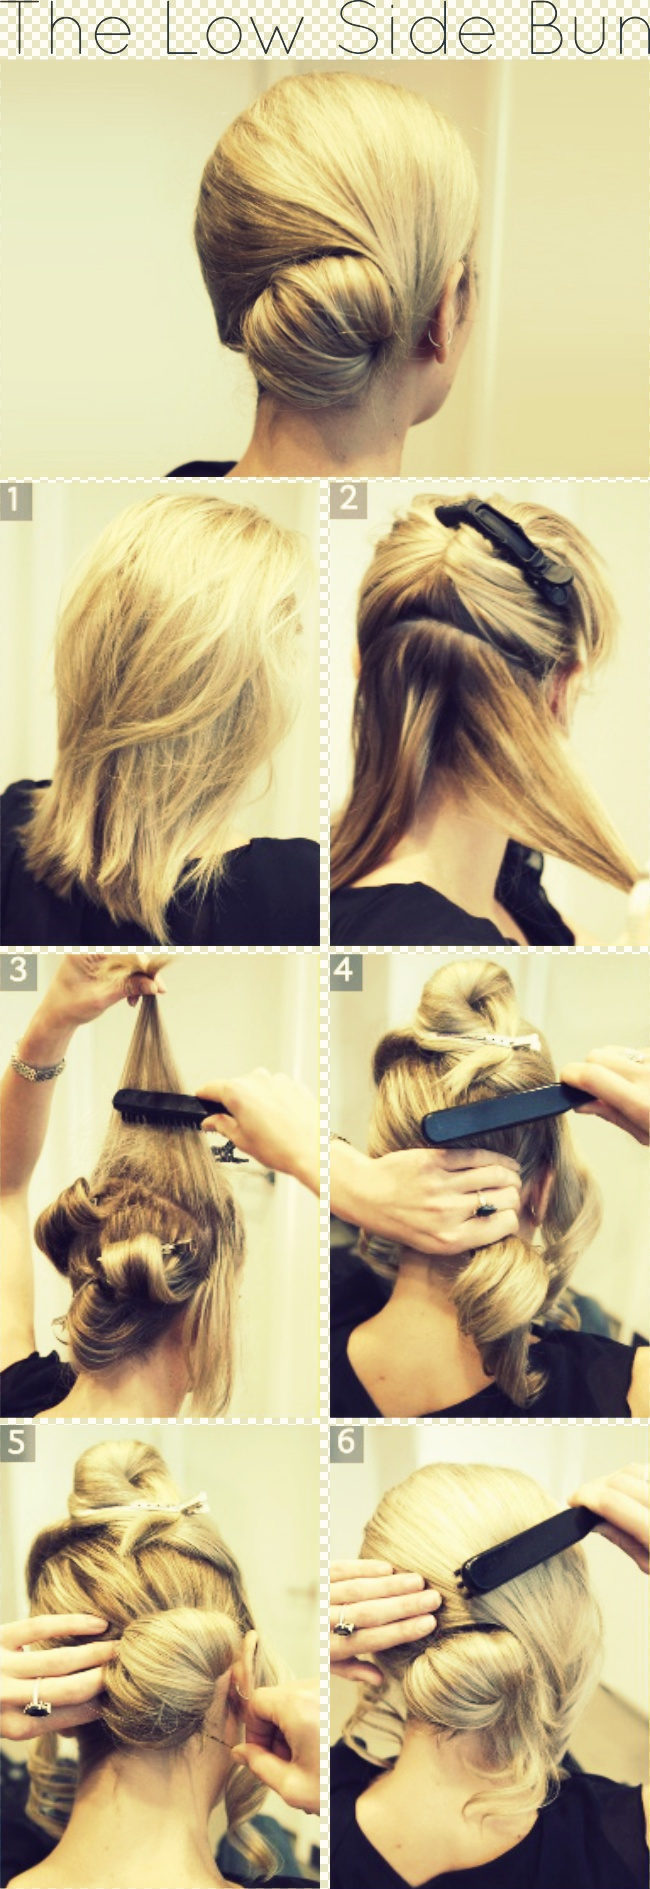 The Low Side Bun Step ...